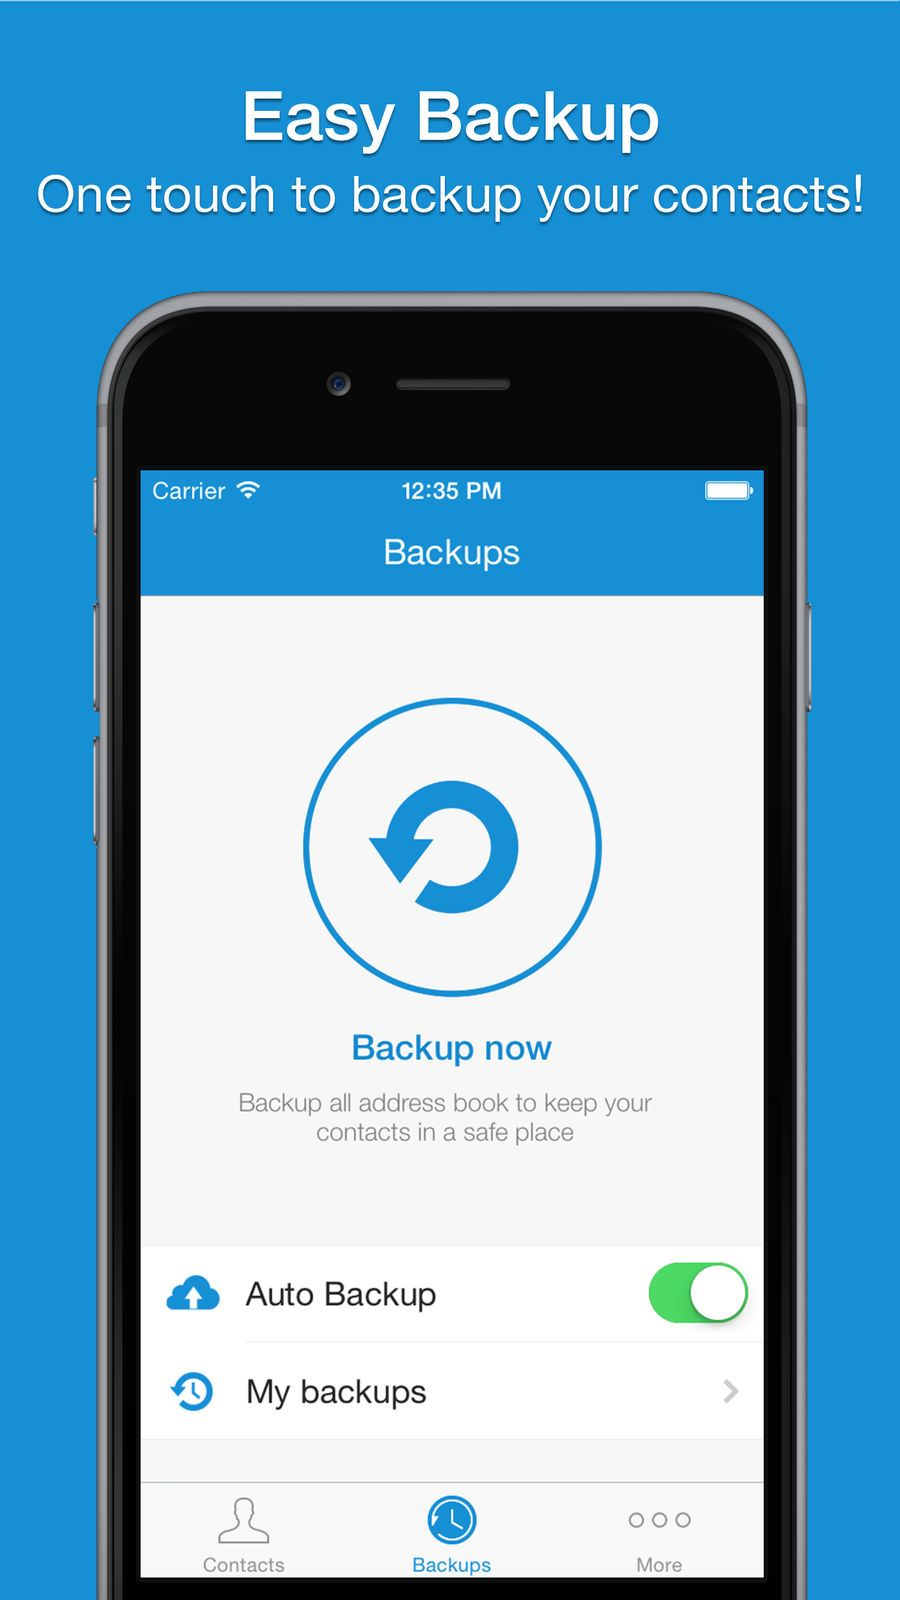 easy backup business productivity apps ios game ios concept art